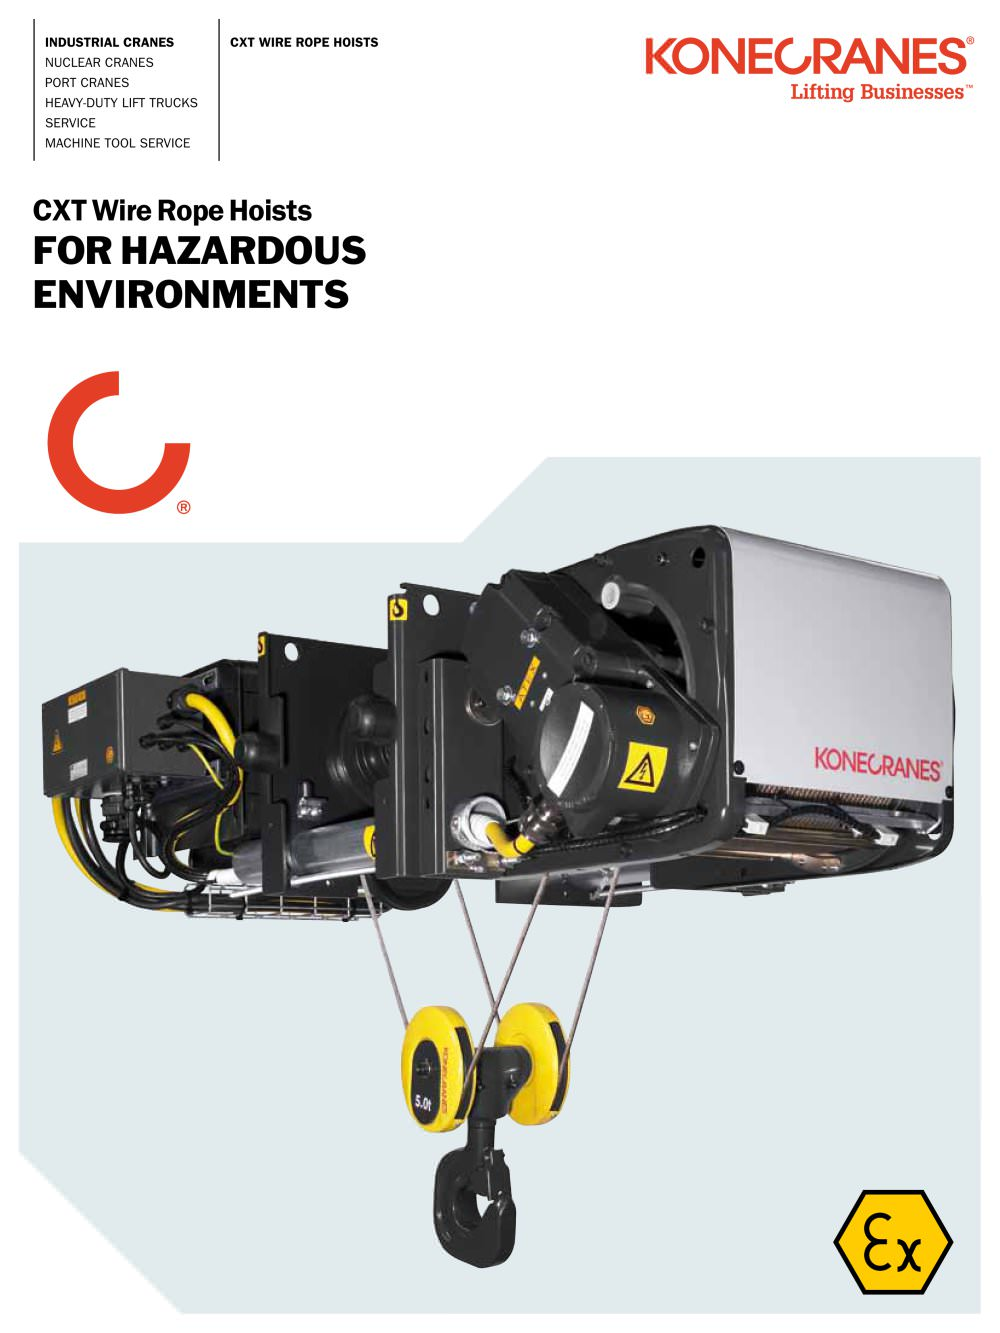 CXT Wire Rope Hoist for Hazardous Environments - 1 / 4 Pages